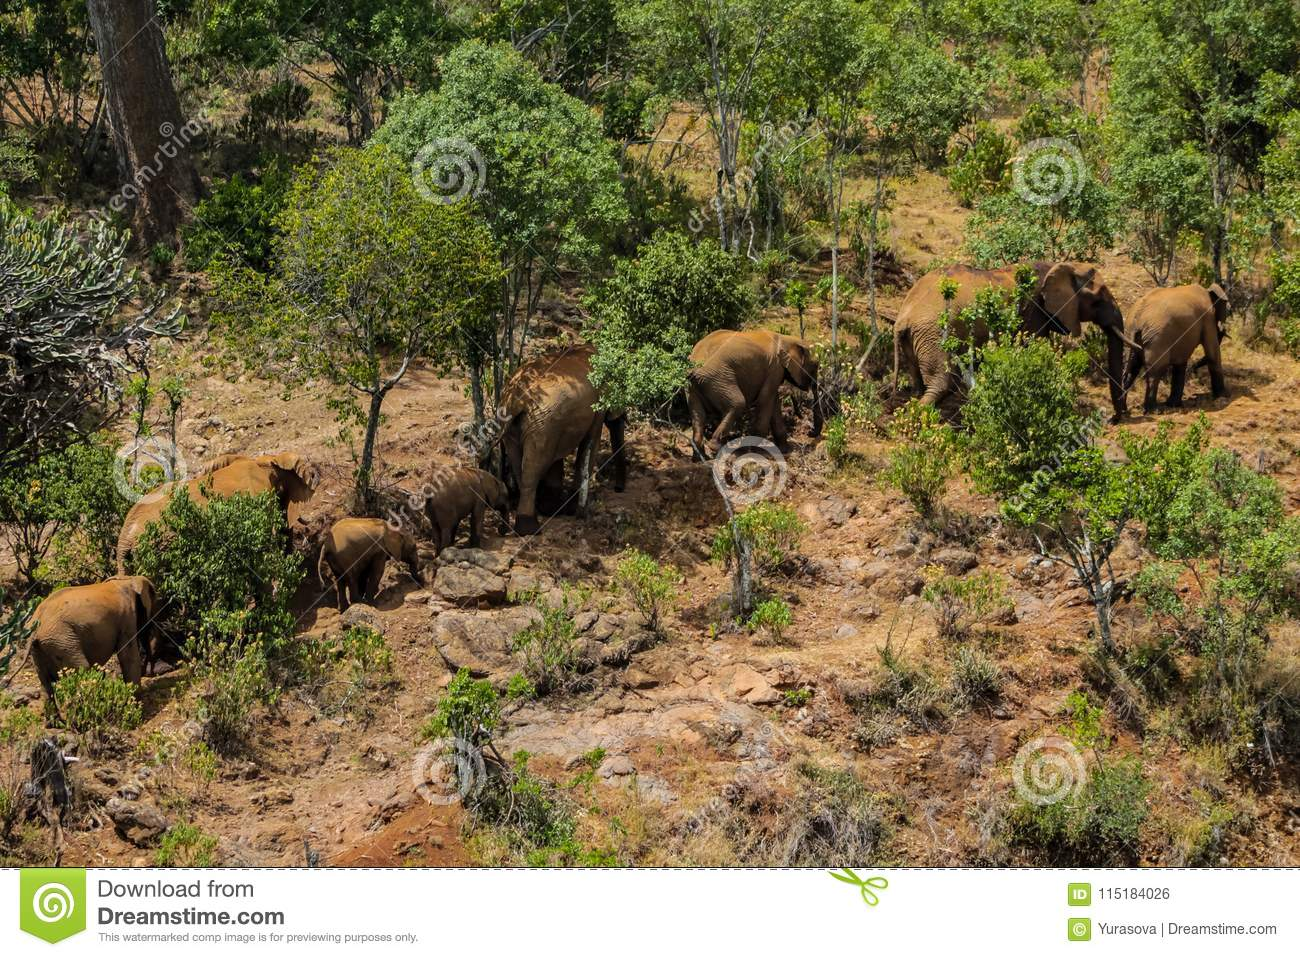 Elephant family in Africa wild nature life